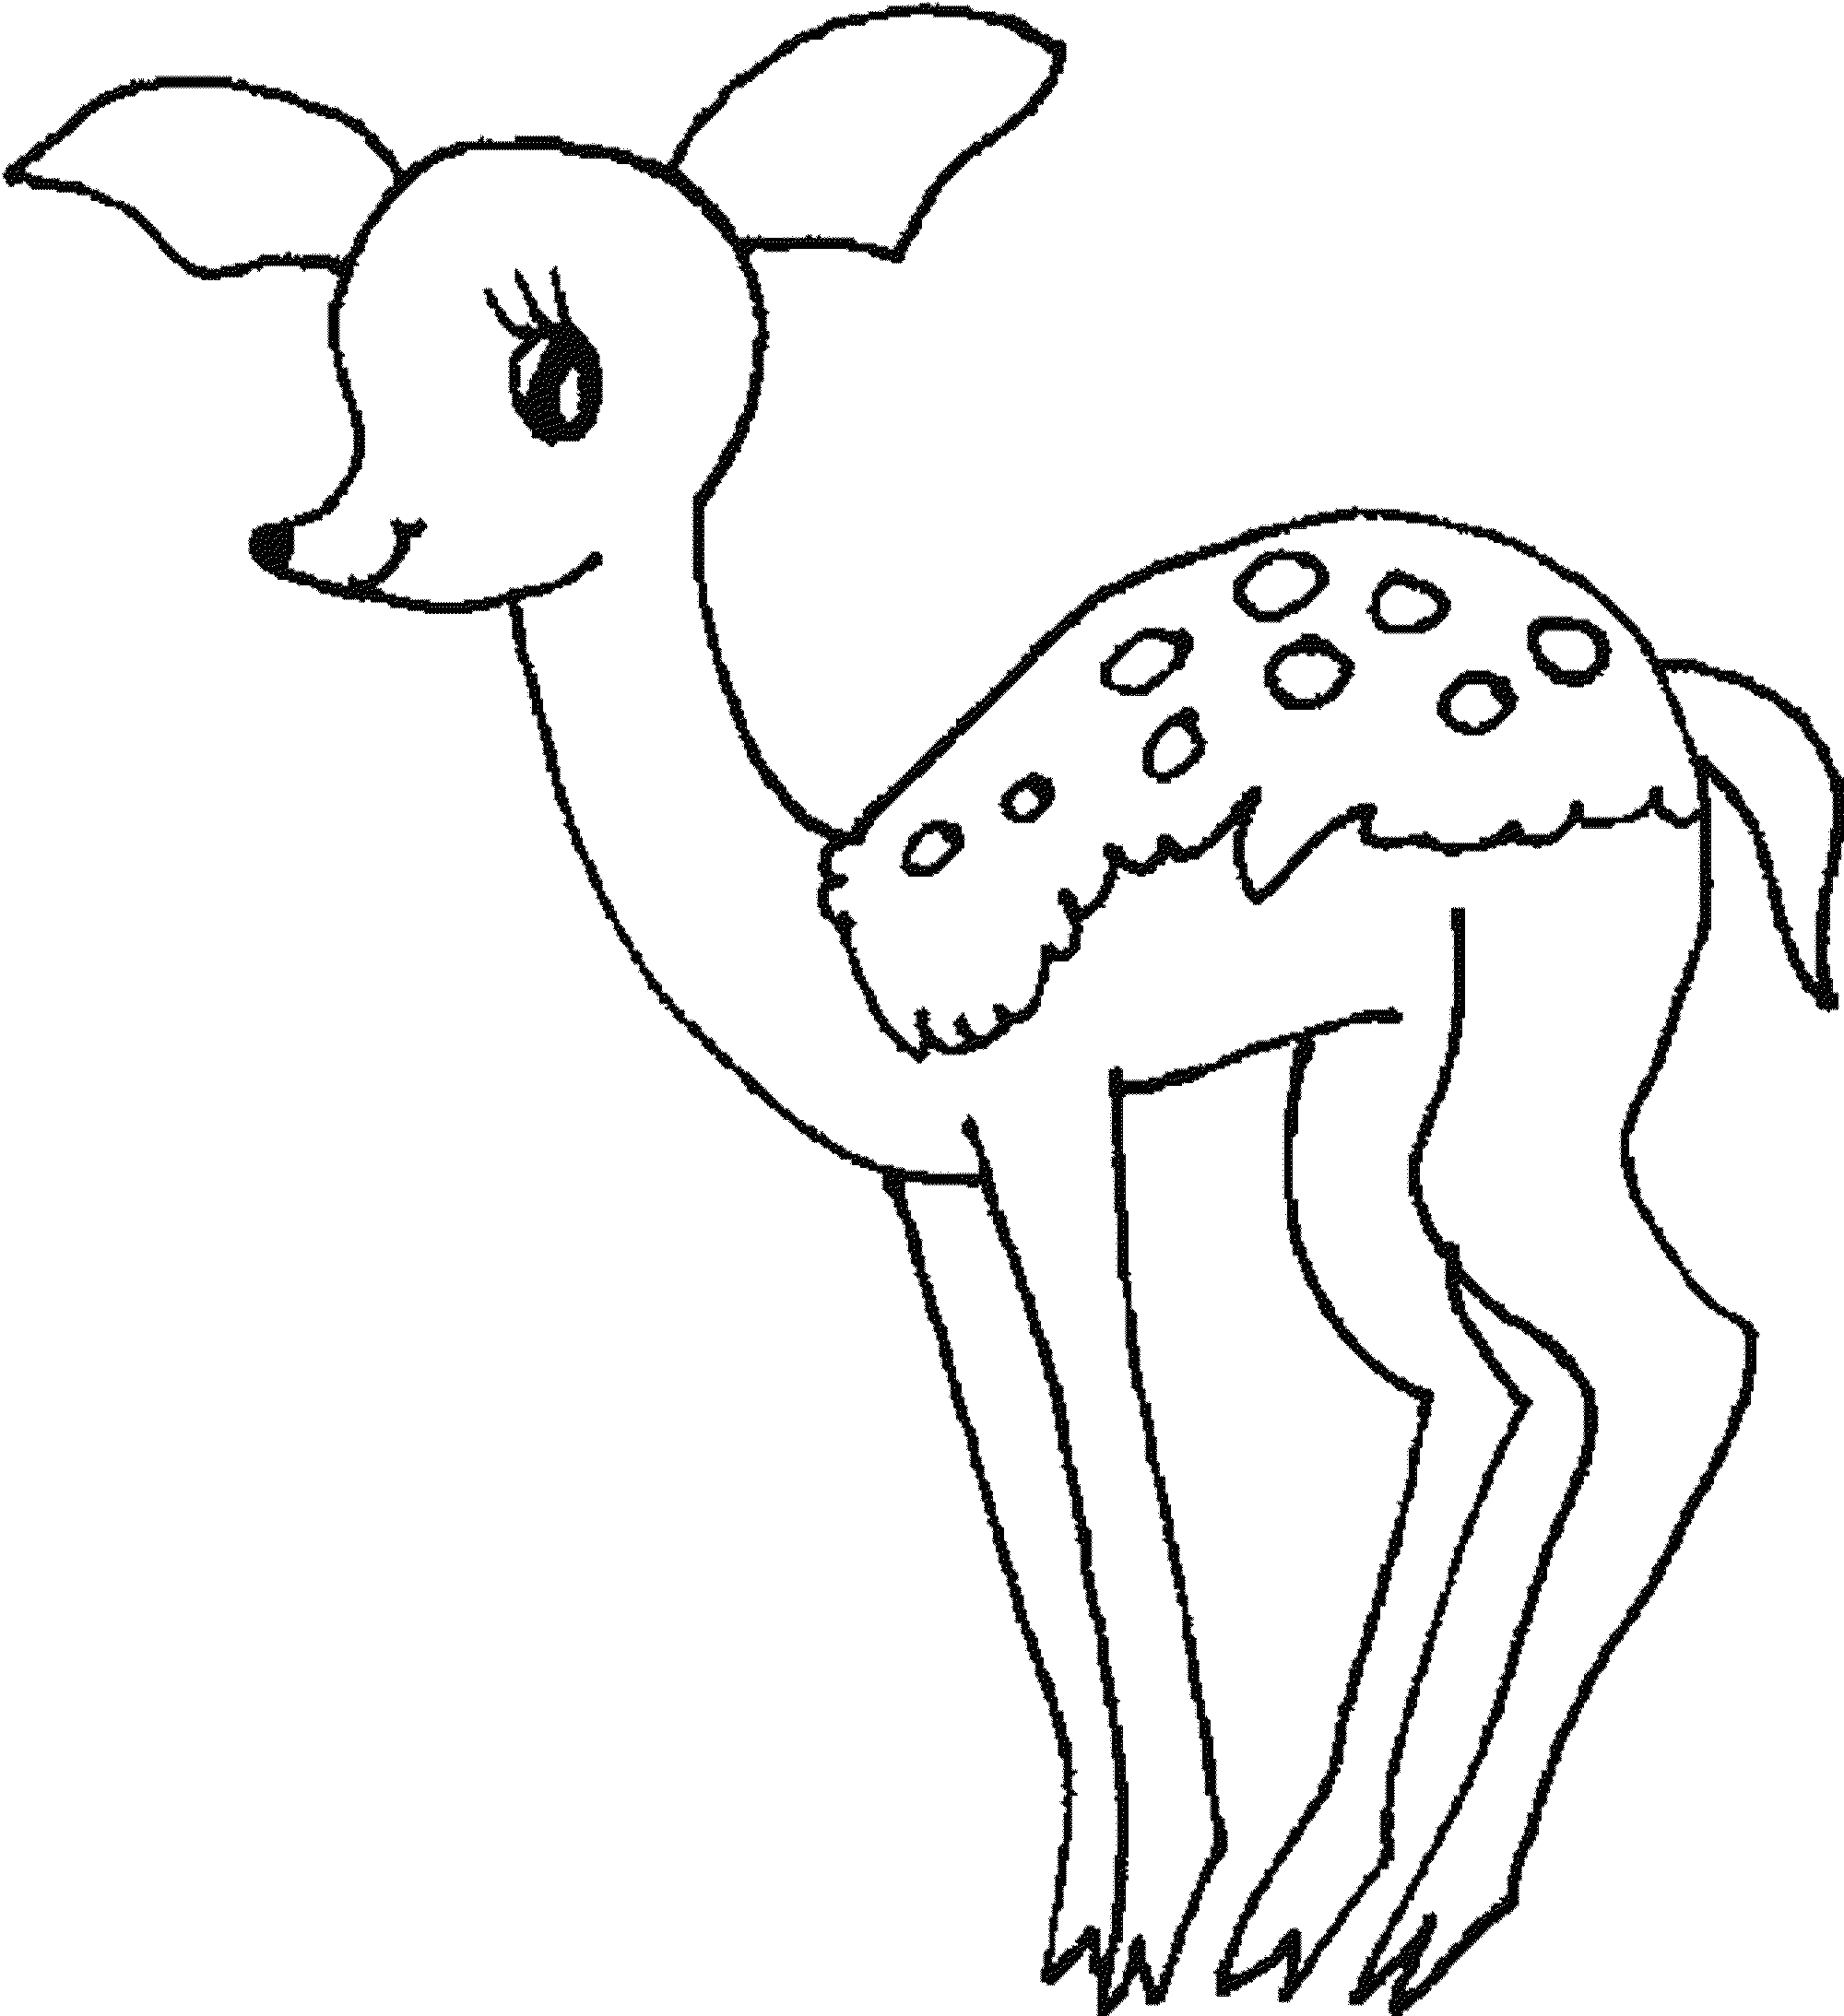 Deer Coloring Pages Easy Deer Coloring Pages Printable Coloring Page For Kids